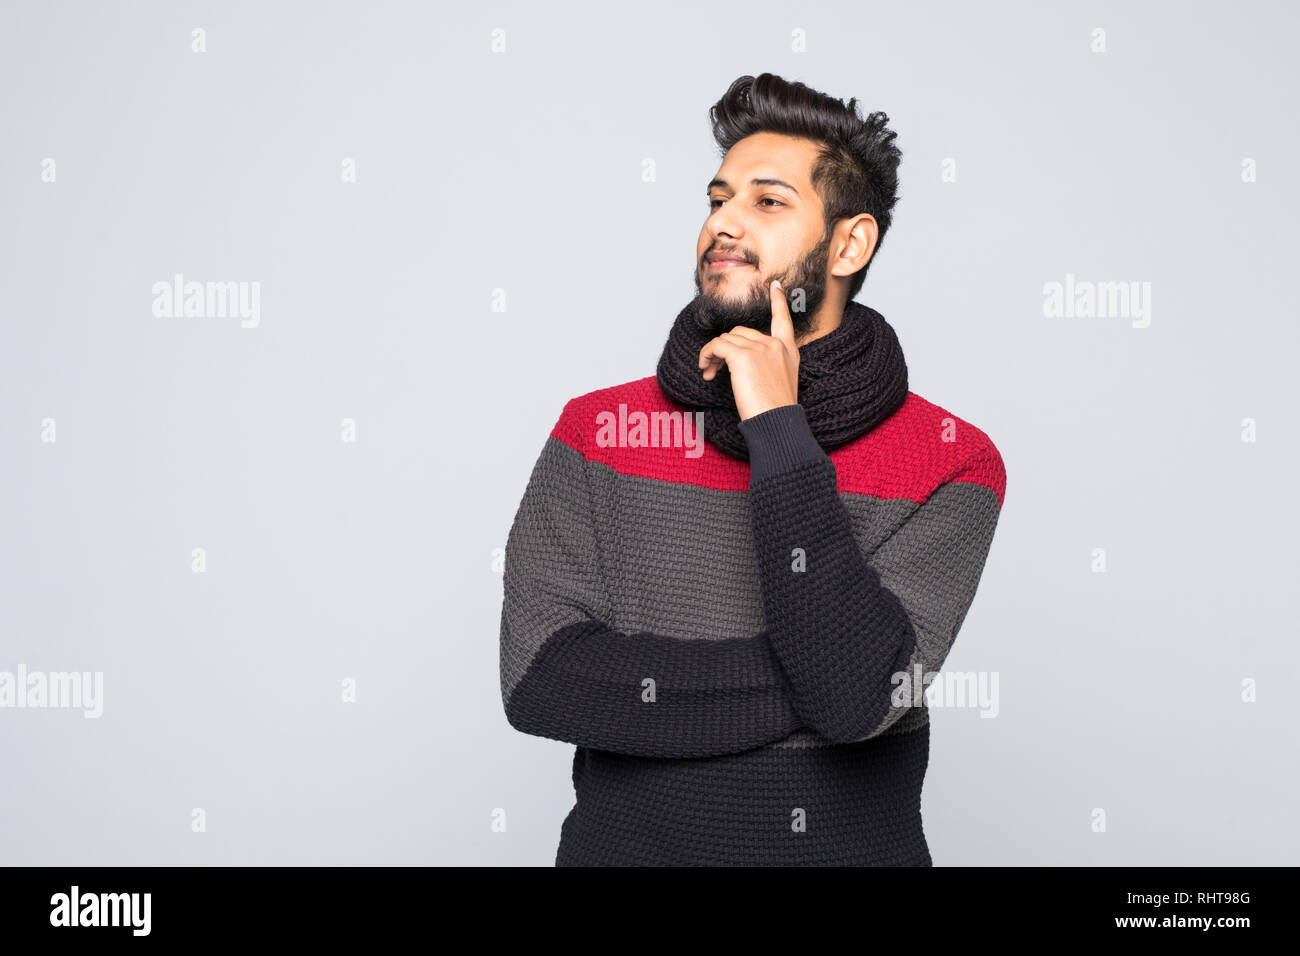 Handsome indian man wearing sweater over isolated gray background with hand on chin thinking about question, pensive expression. Stock Photo